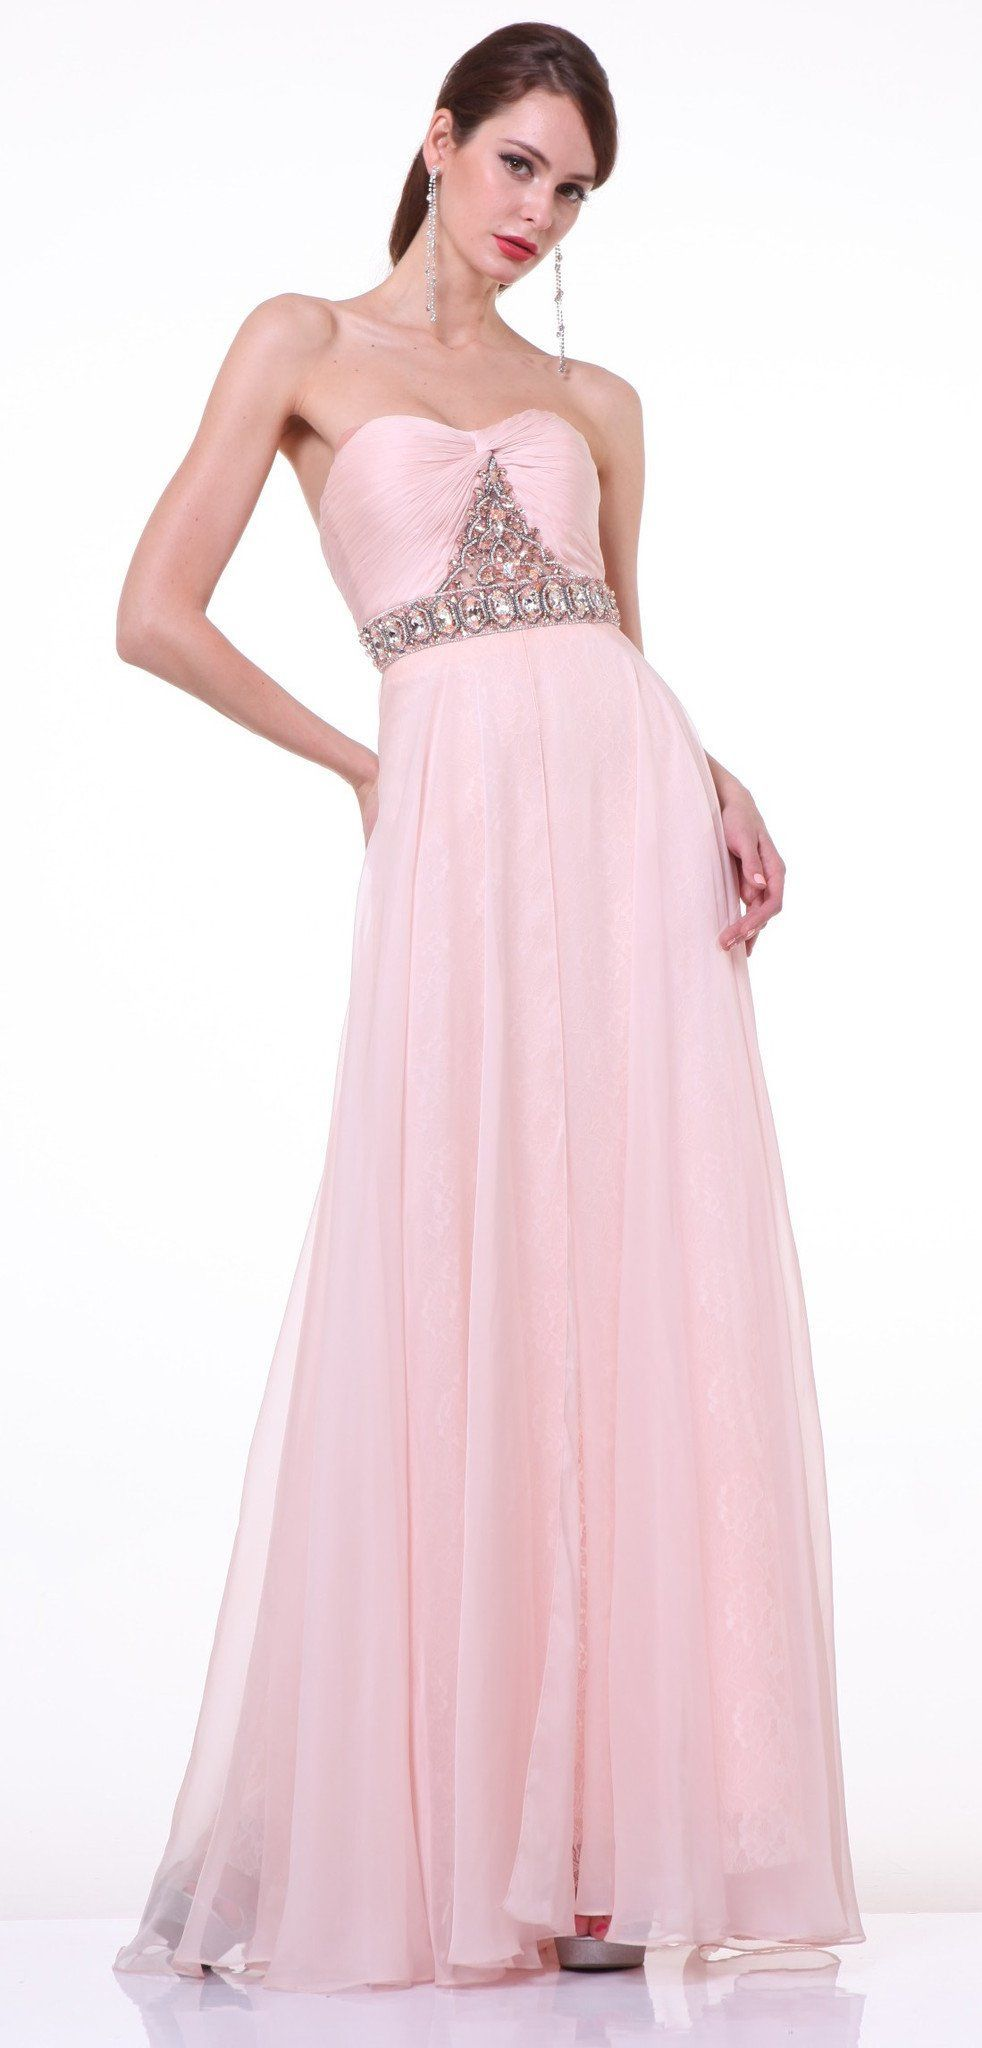 Cd long aline prom dress sweetheart neckline products